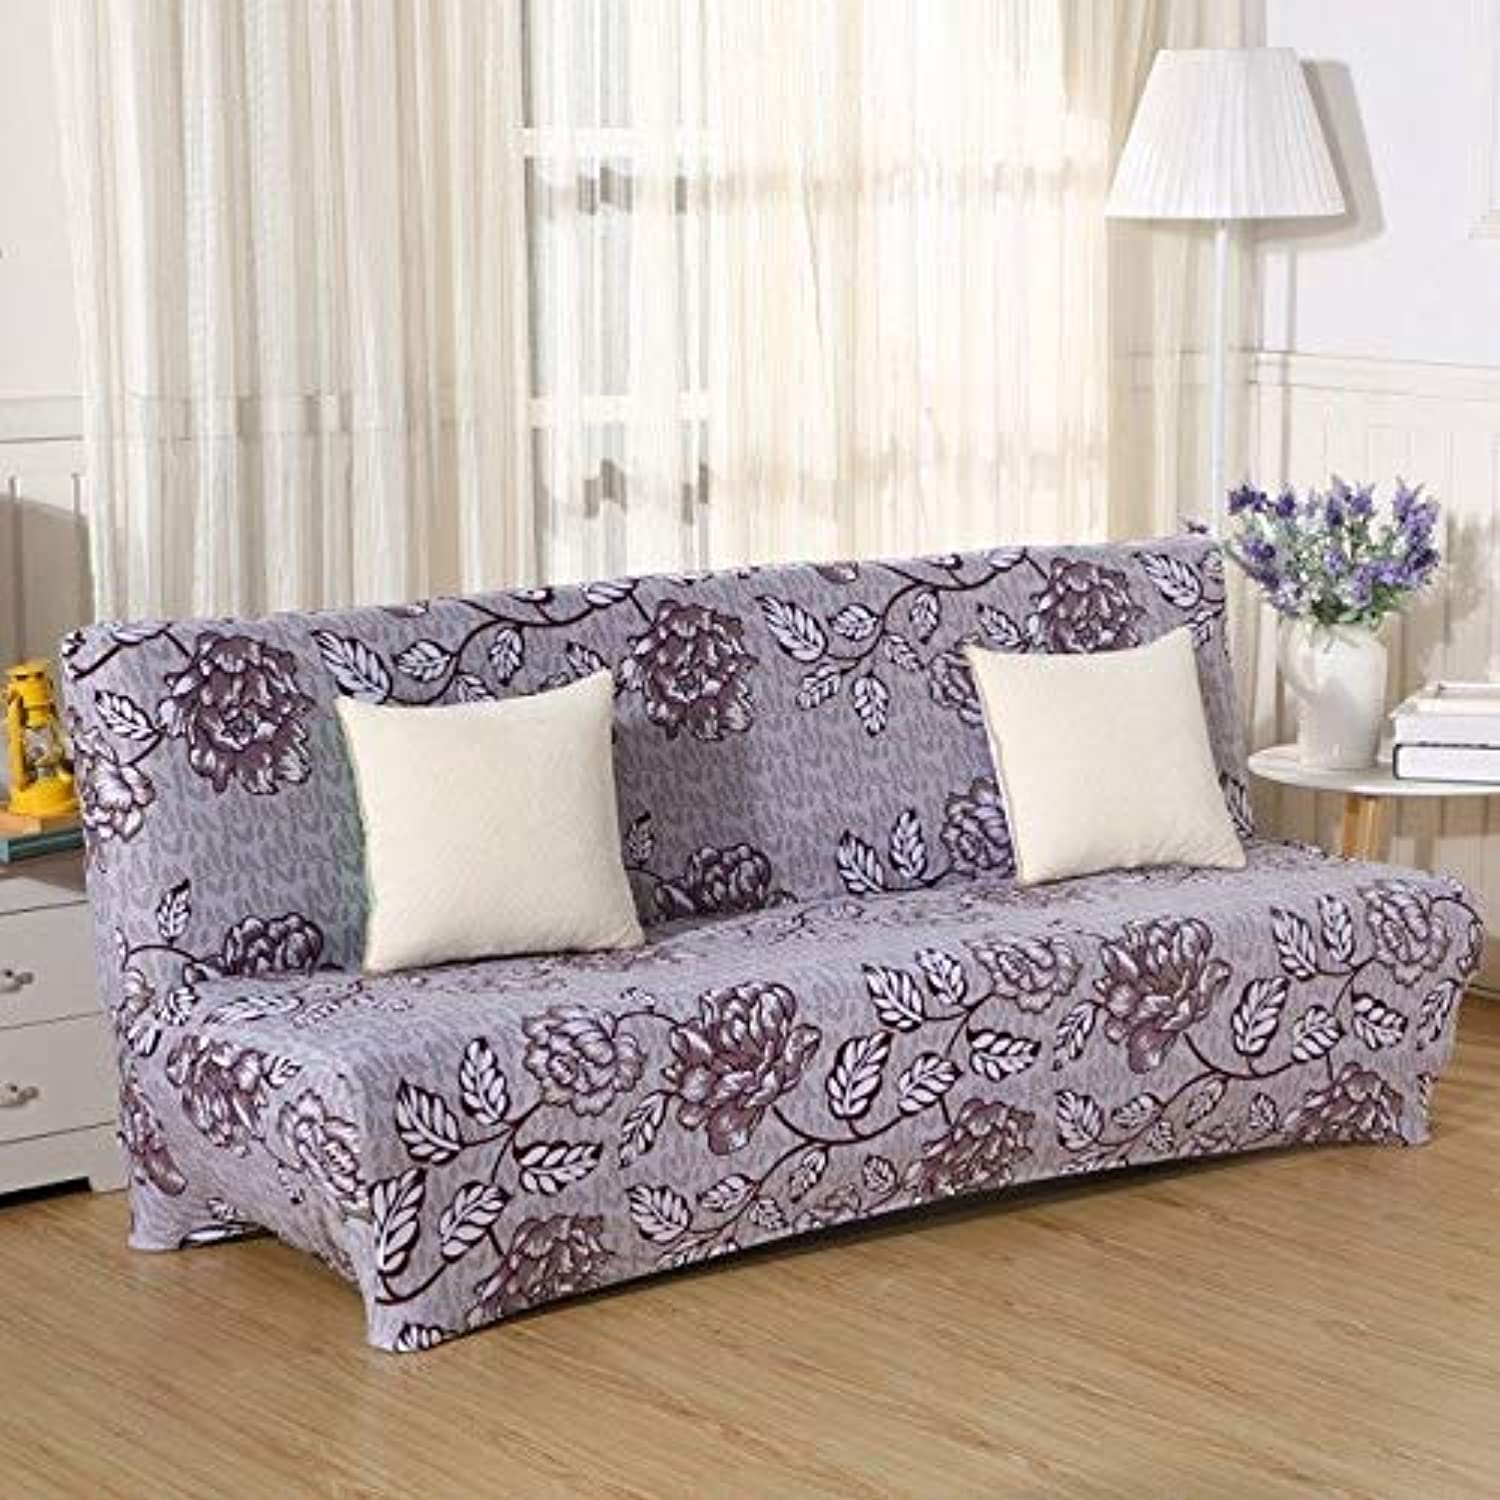 Farmerly Modern Without Armrest Sofa Cover Multifunction Sofa Slipcover Big Elastic Fabric Anti-Mite 160-210cm bluee Star Sofa Bed Covers   08, 160-195cm